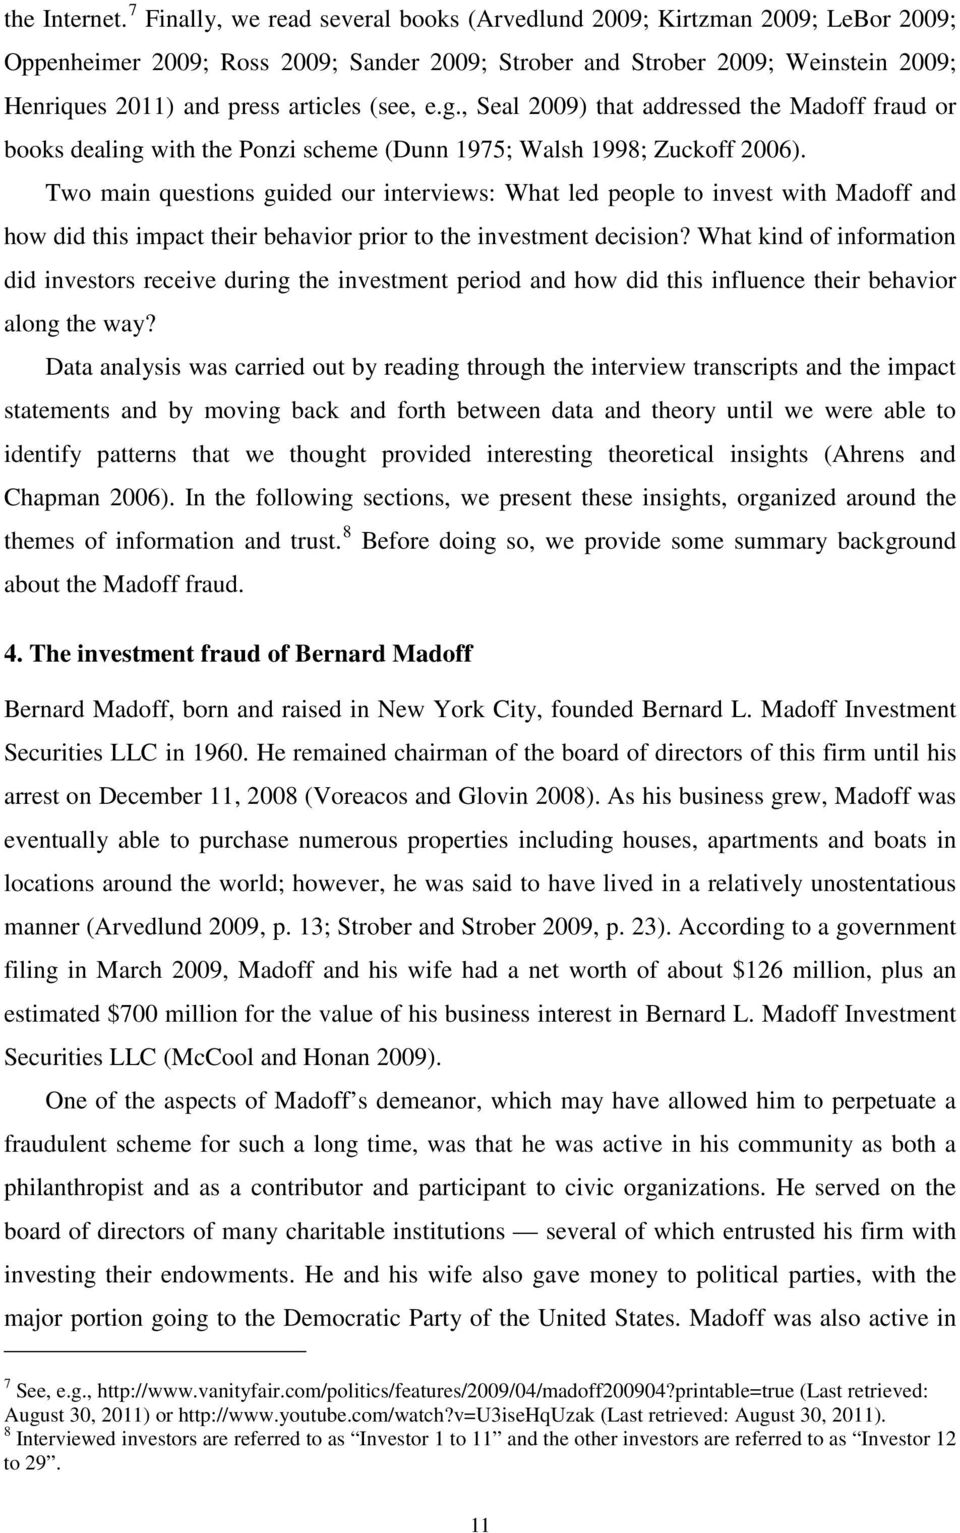 (see, e.g., Seal 2009) that addressed the Madoff fraud or books dealing with the Ponzi scheme (Dunn 1975; Walsh 1998; Zuckoff 2006).